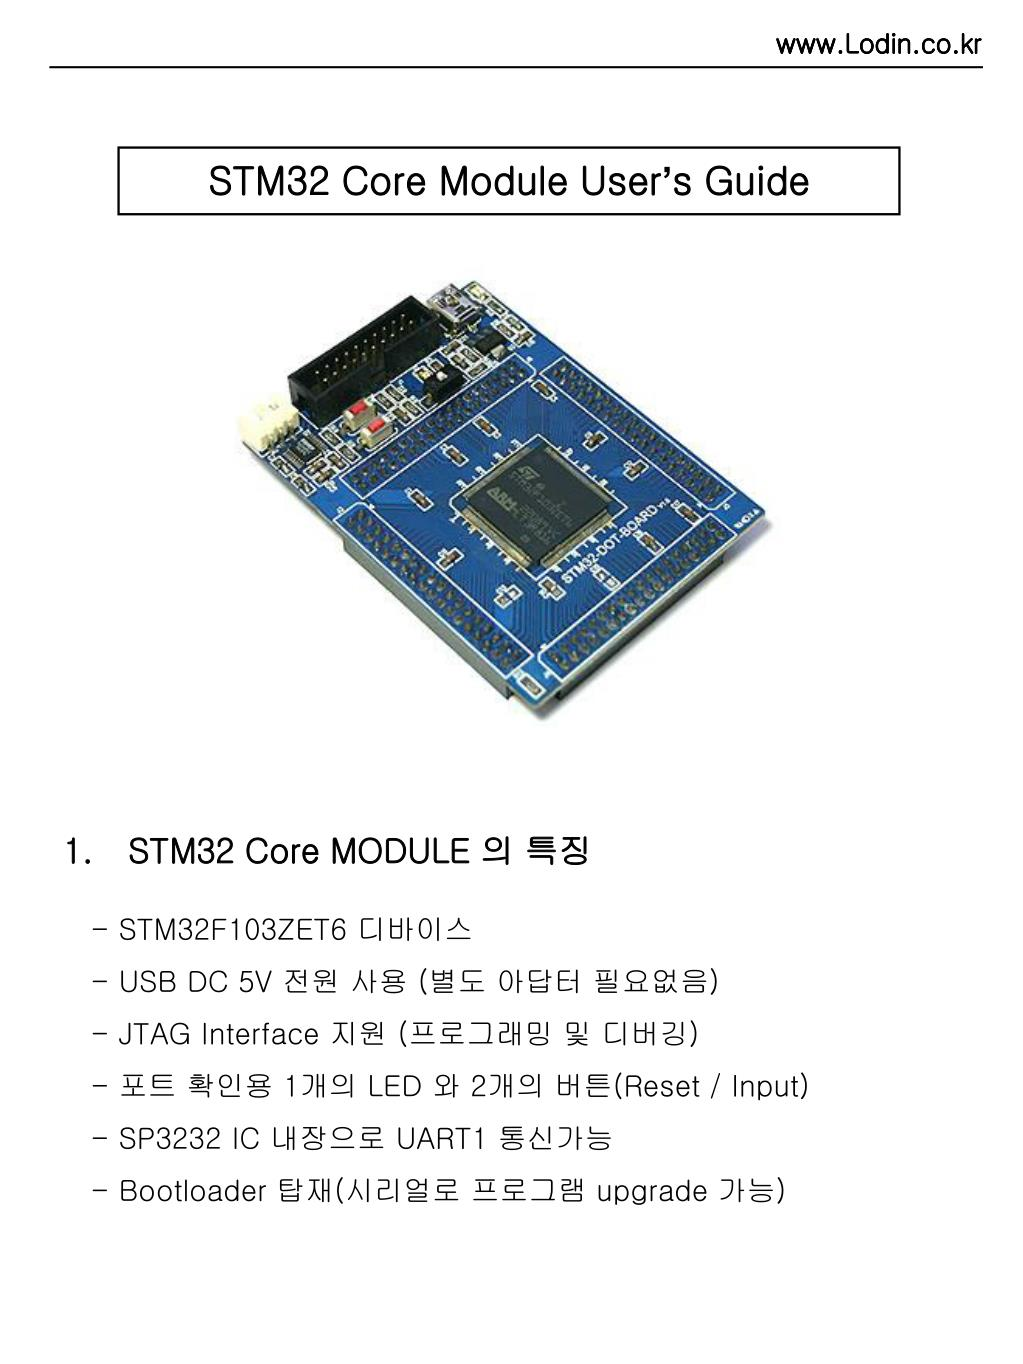 PPT - STM32 Core Module User ' s Guide PowerPoint